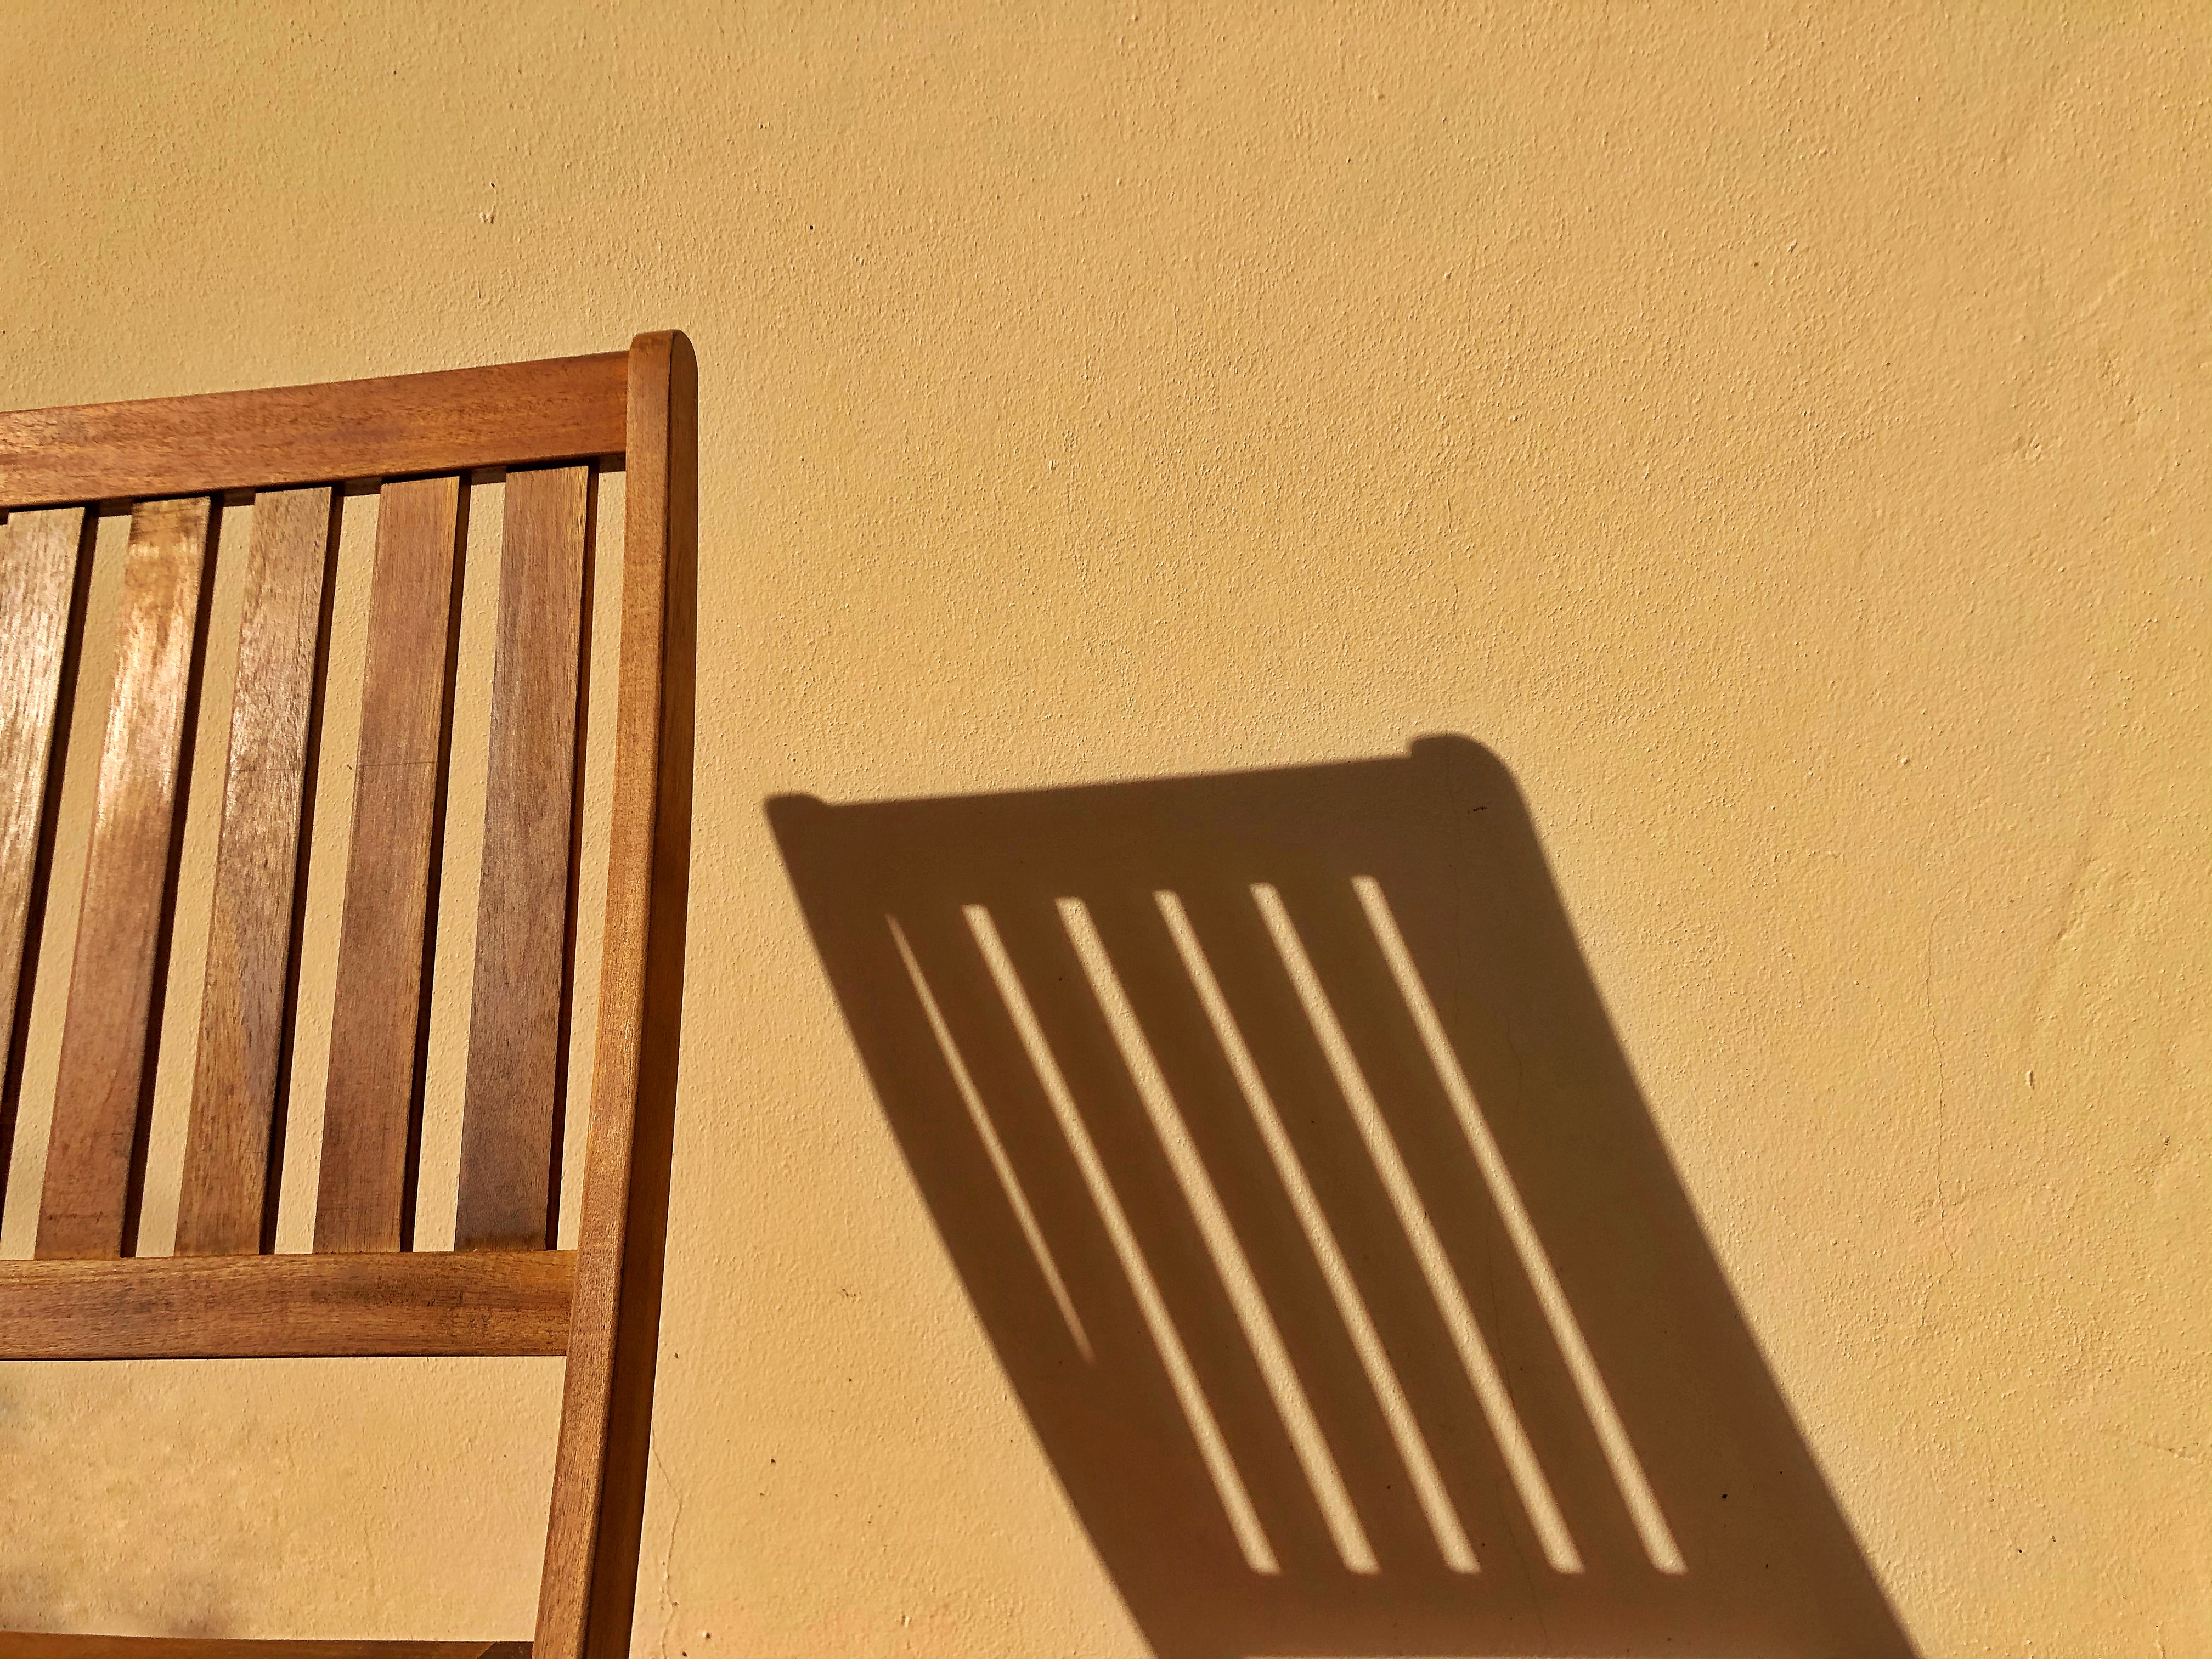 Chair and its shadow on a yellow wall